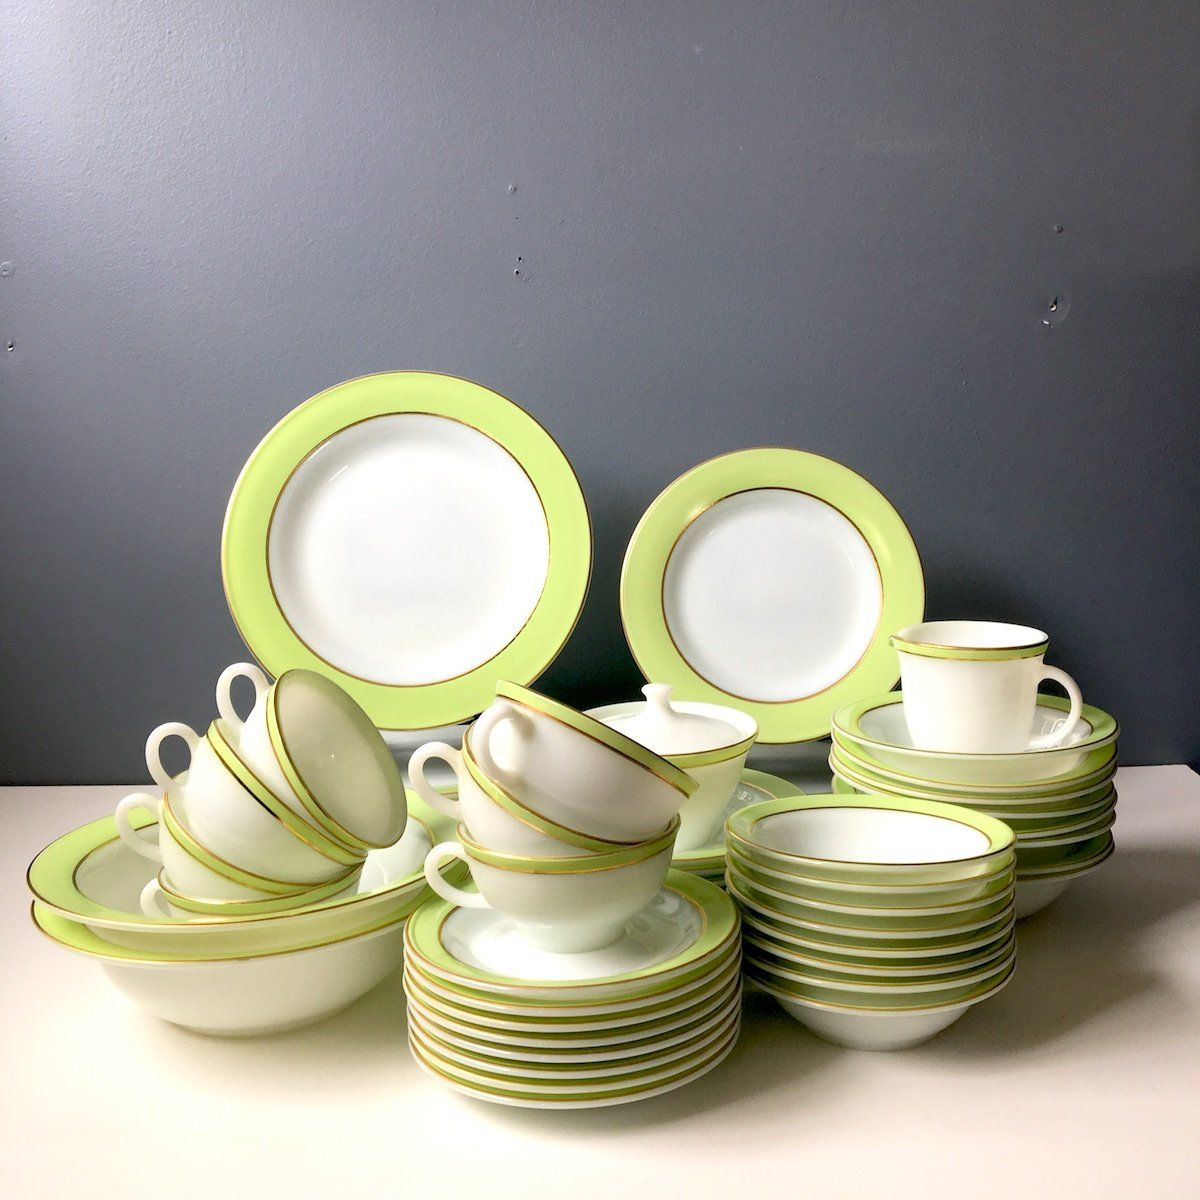 Pyrex lime green and white dinnerware set for 6-8 - 1950s vintage china & Pyrex lime green and white dinnerware set for 6-8 - 1950s vintage ...